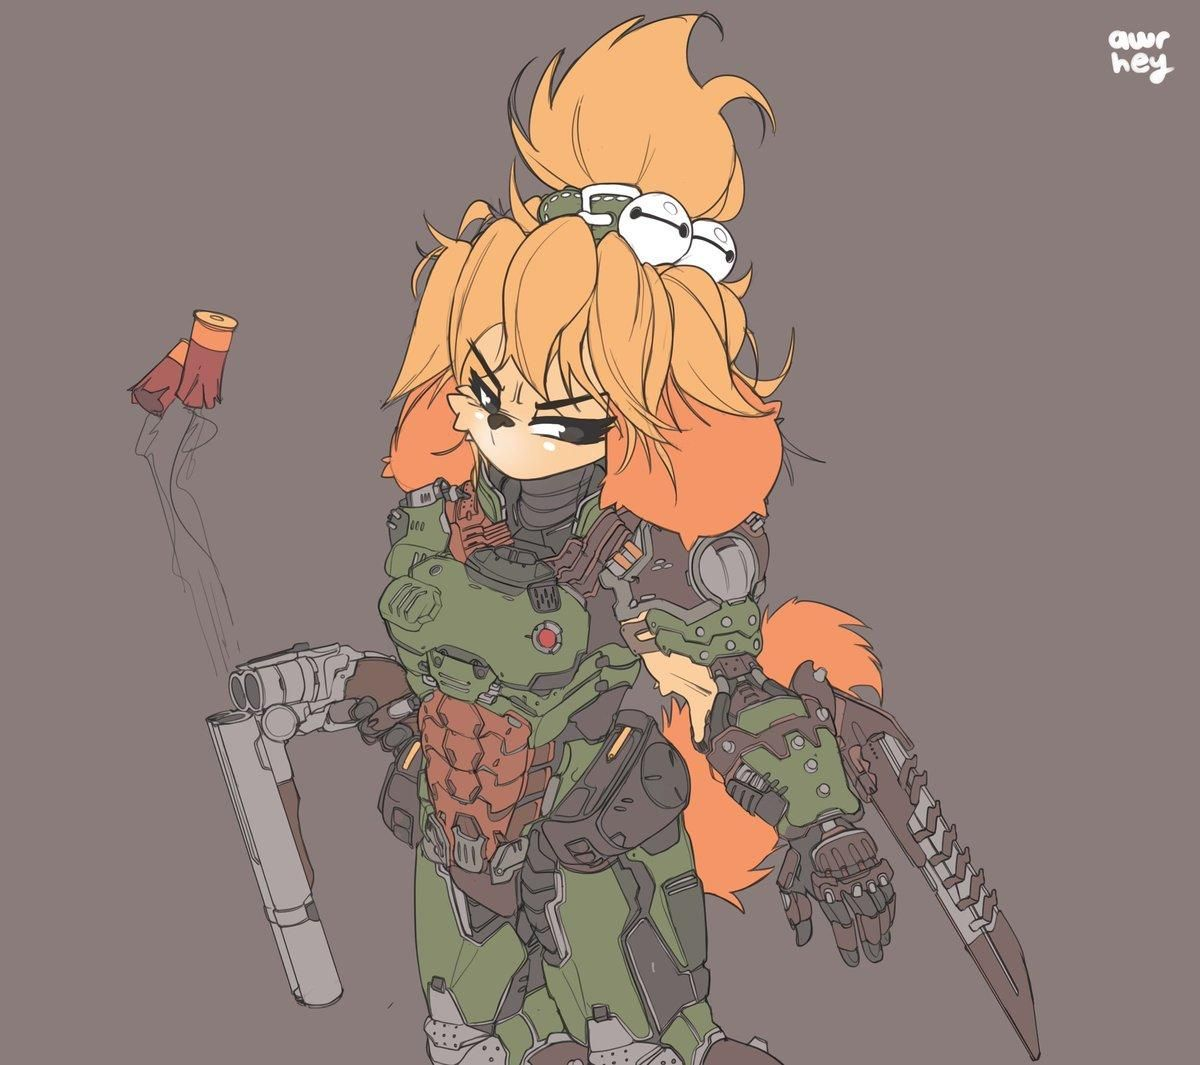 That S Isadoom She Has The Doomslayer Armor That S Why She Isadoom Doomguy And Isabelle In 2020 Animal